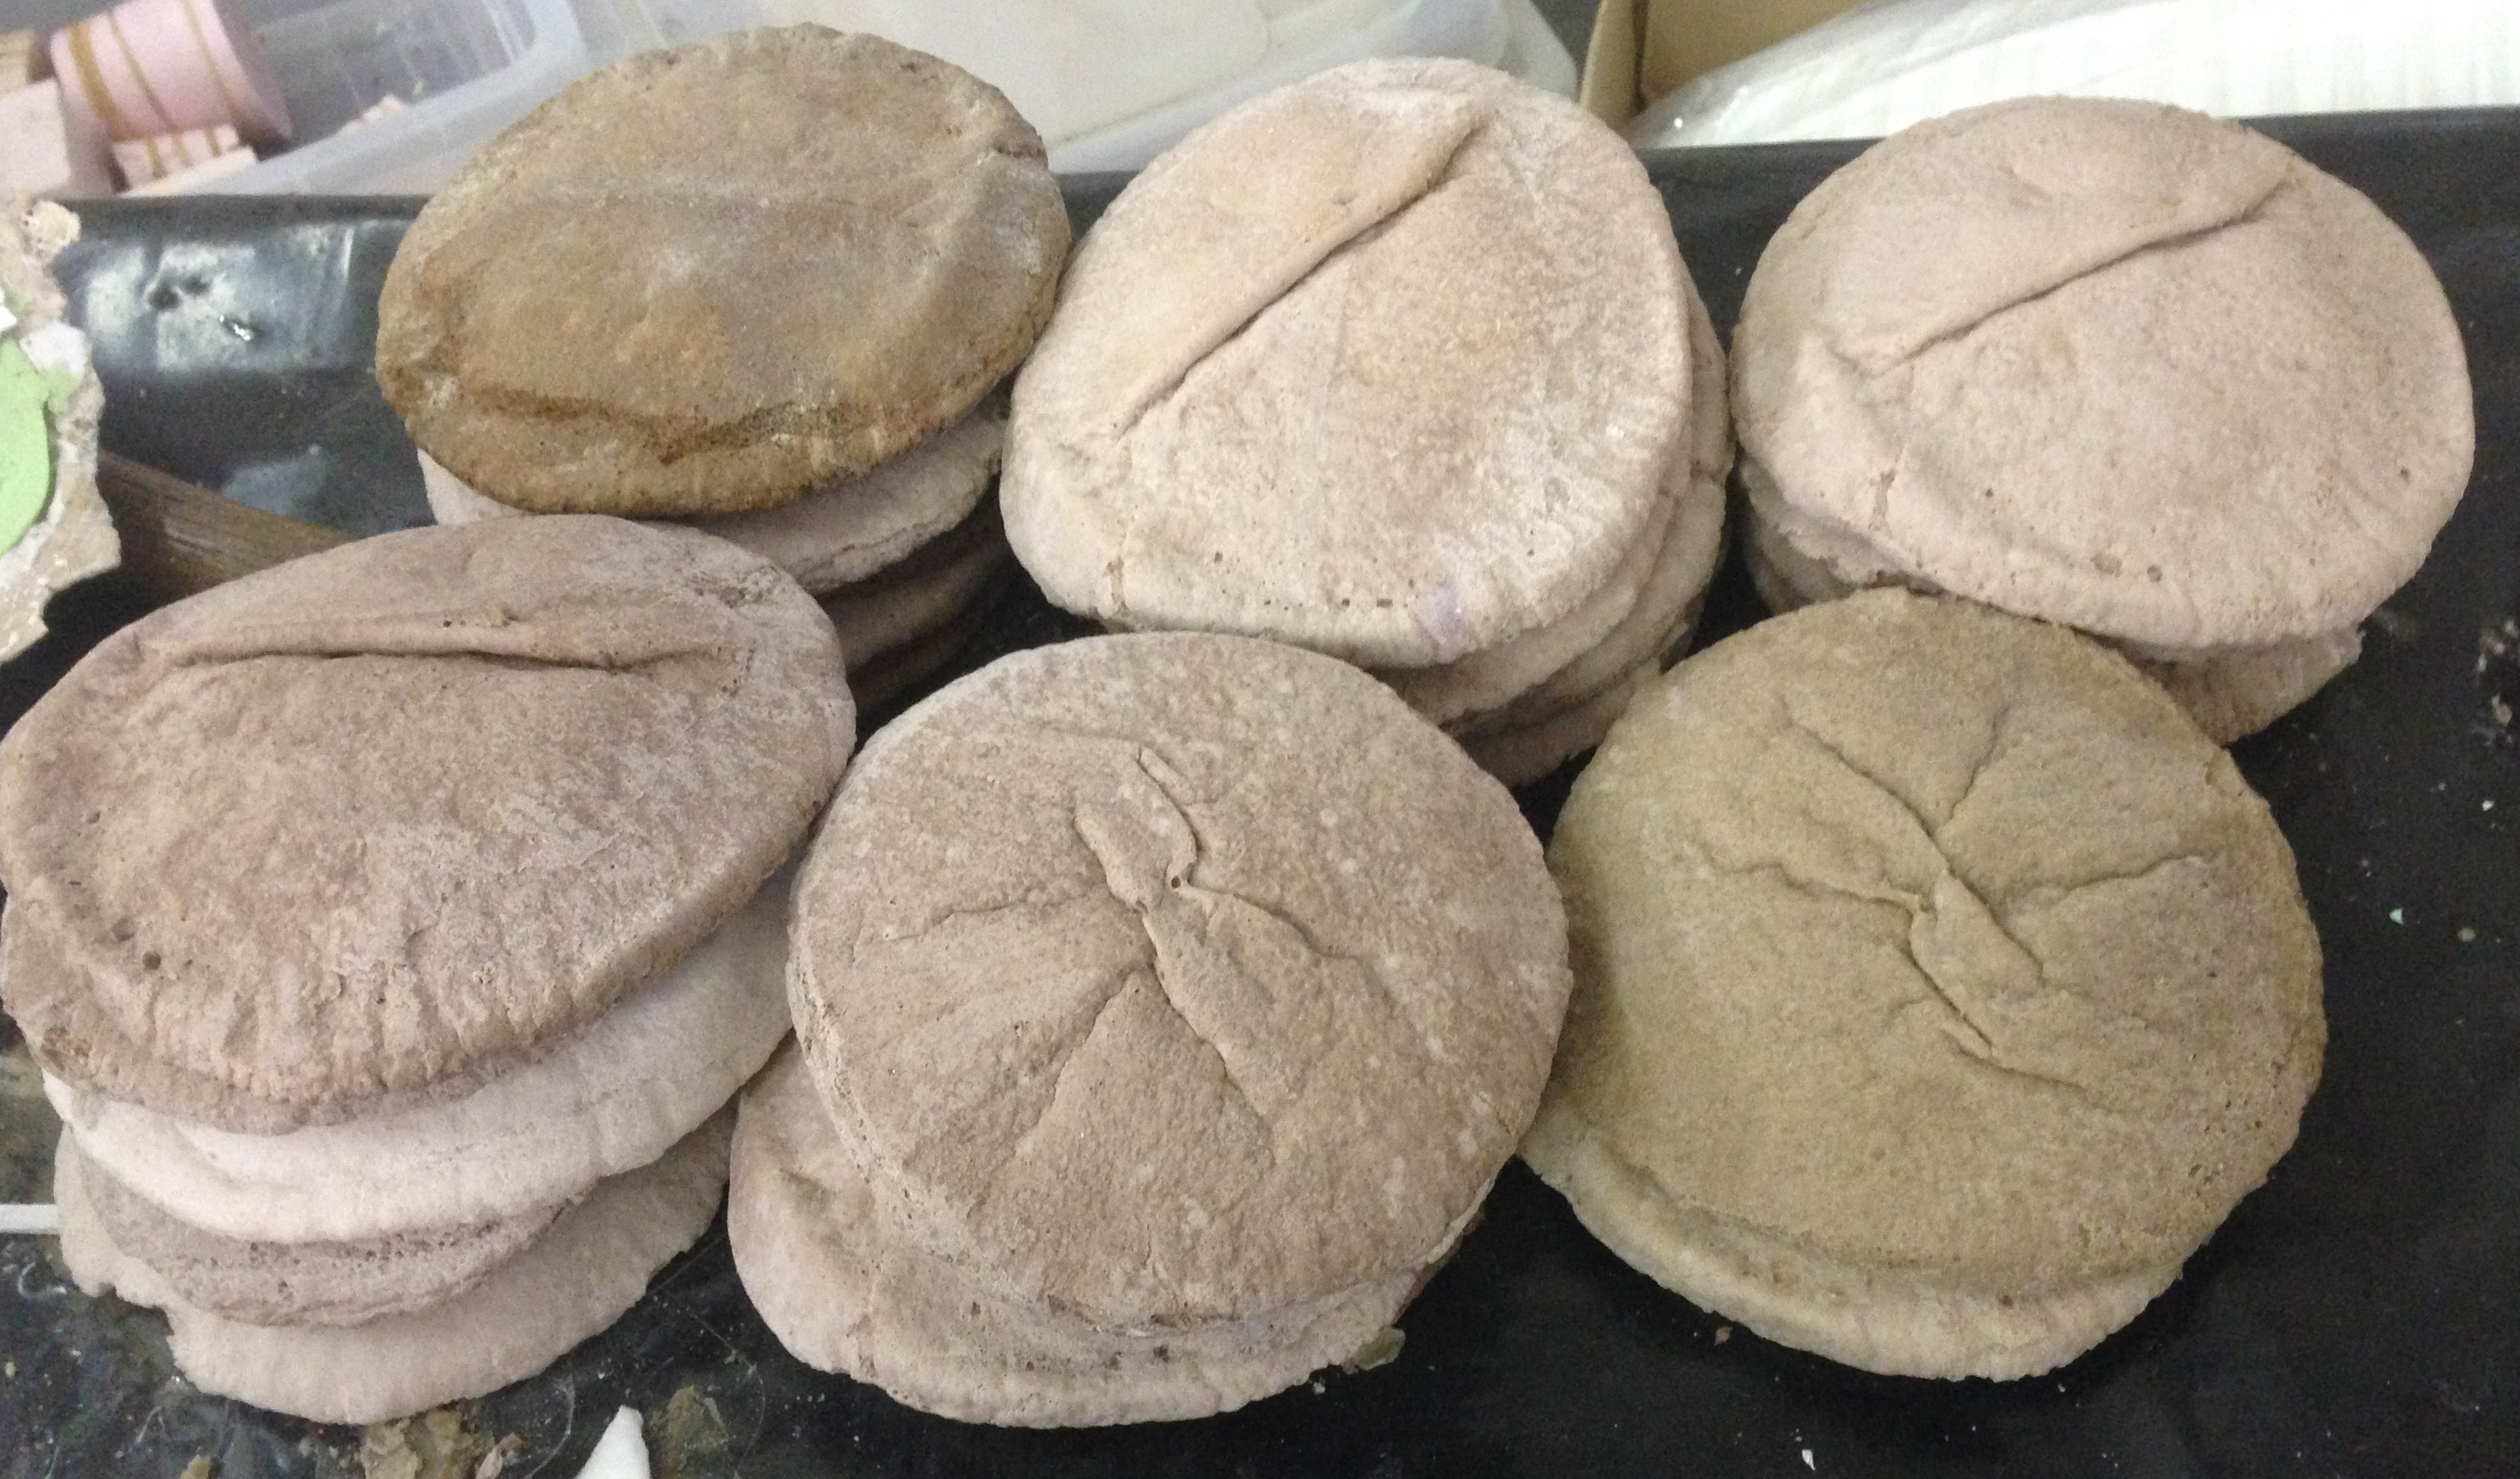 Fabricated pita bread